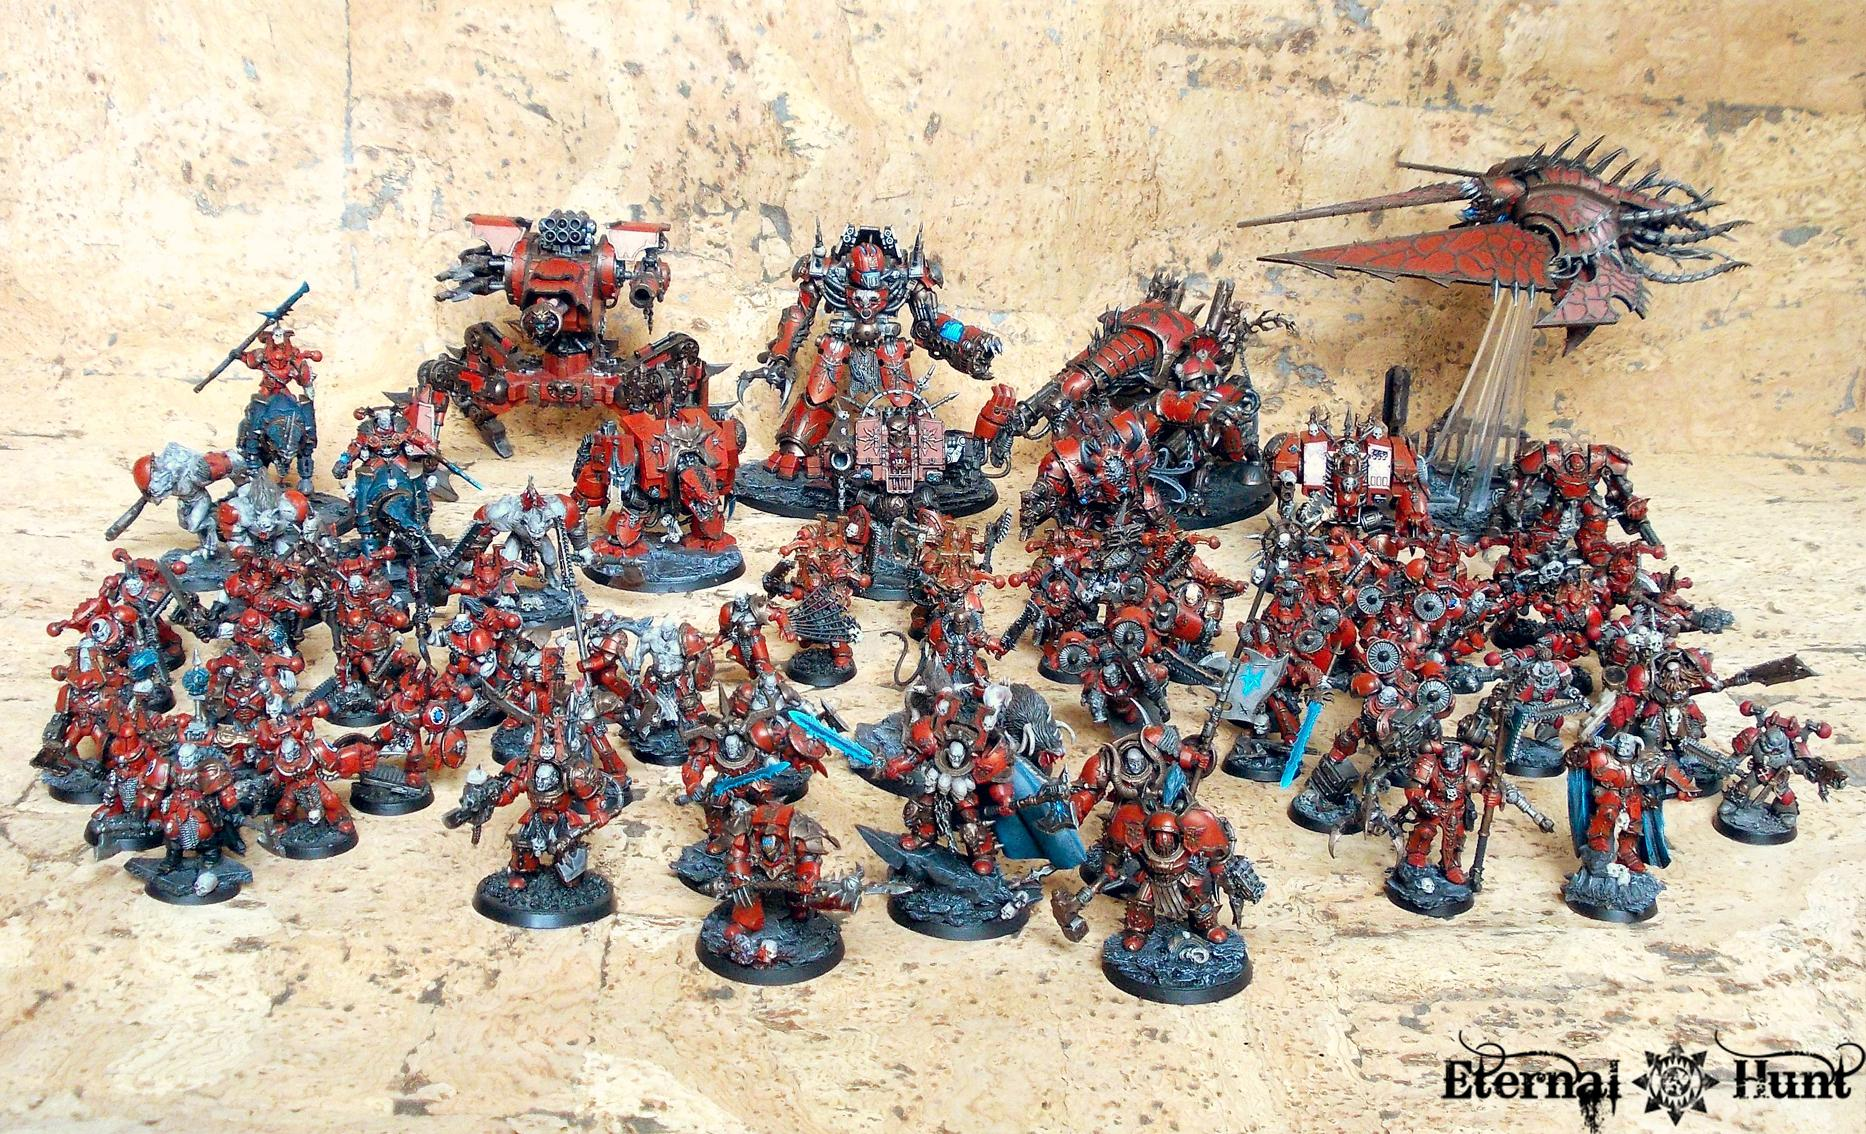 Army, Chaos, Chaos Space Marines, Conversion, Khorne, Khorne's Eternal Hunt, Kitbash, Showcase, Warhammer 40,000, World Eaters